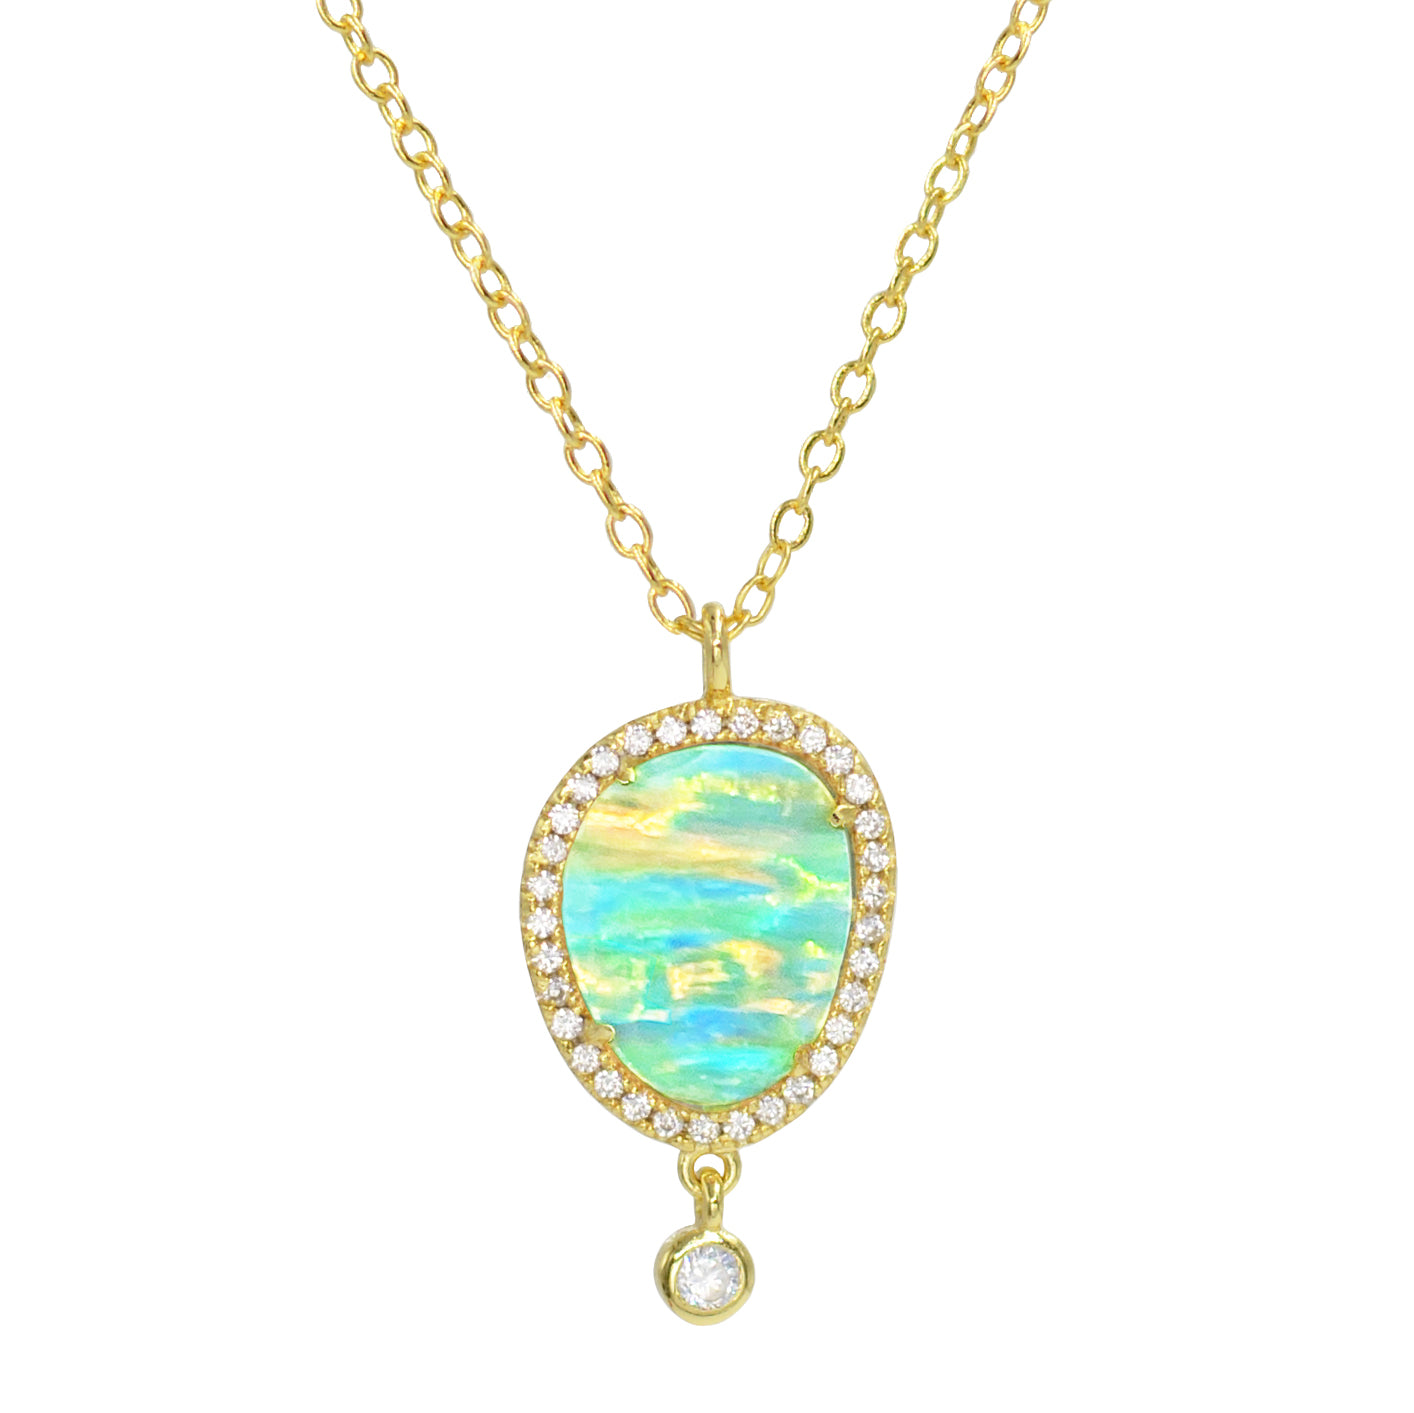 Johari Necklace with Green Opal Stripes Set in Sterling Silver with Gold Plating and Crystals